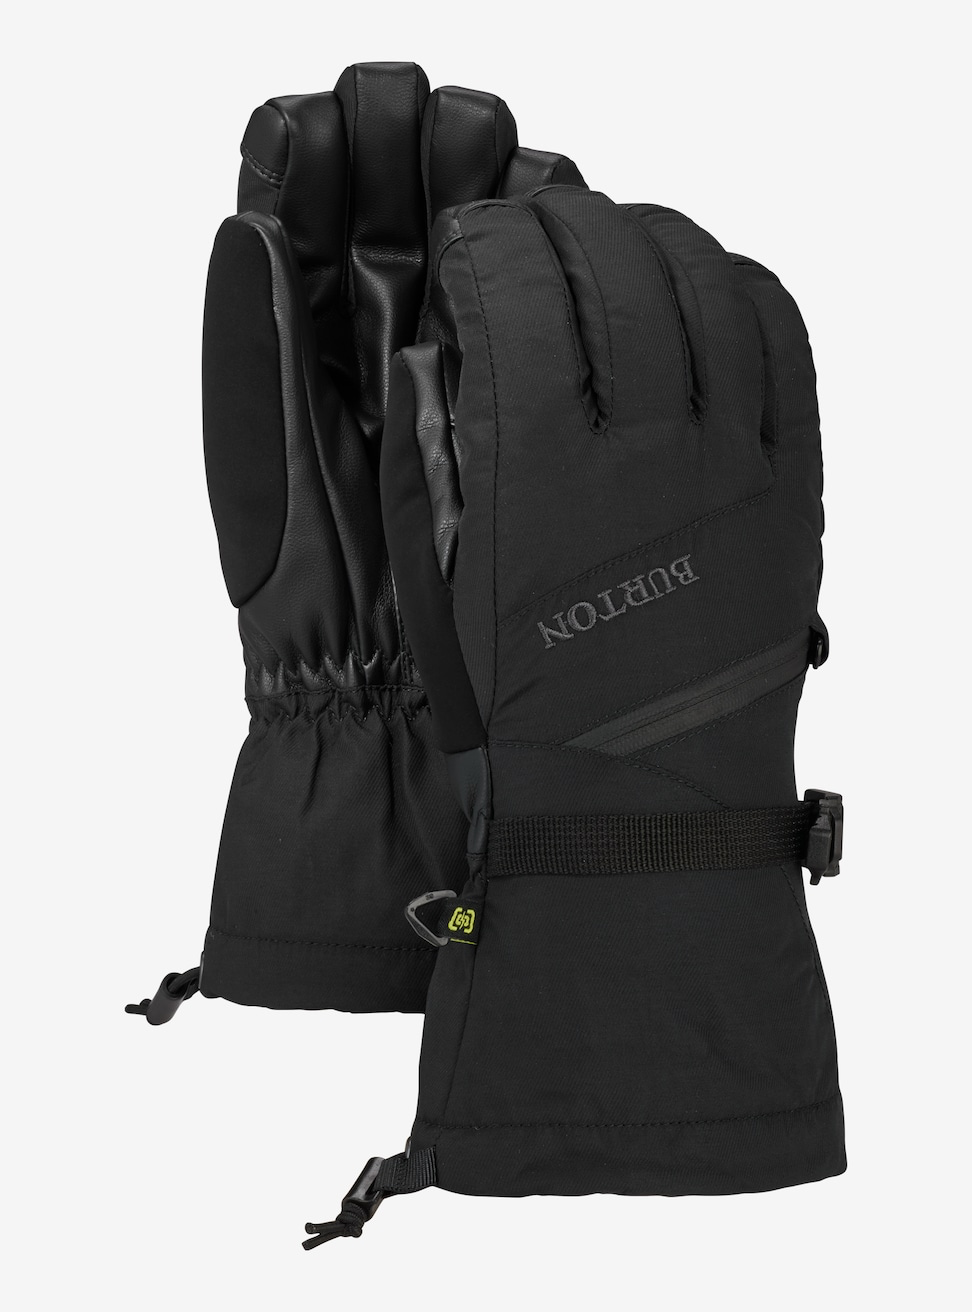 2019 Women's Burton GORE-TEX Glove